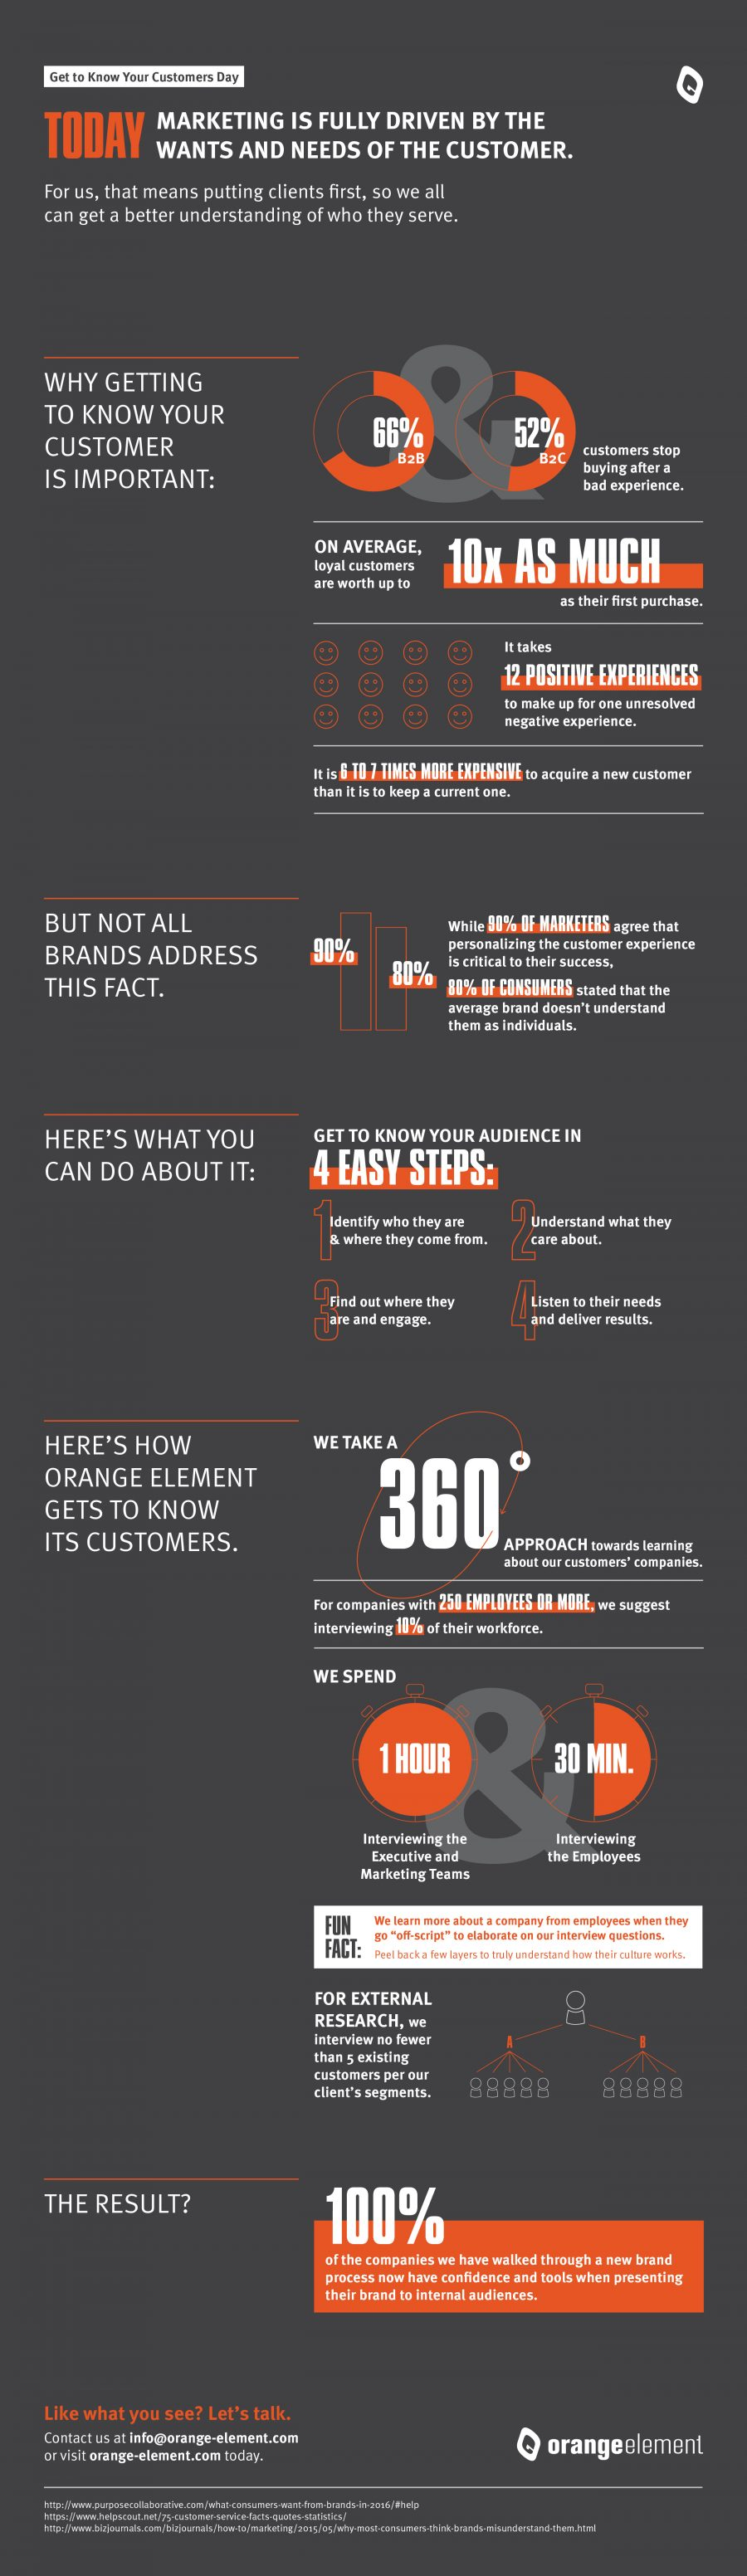 OED_GetToKnowYourCustomer_Infographic_Digital